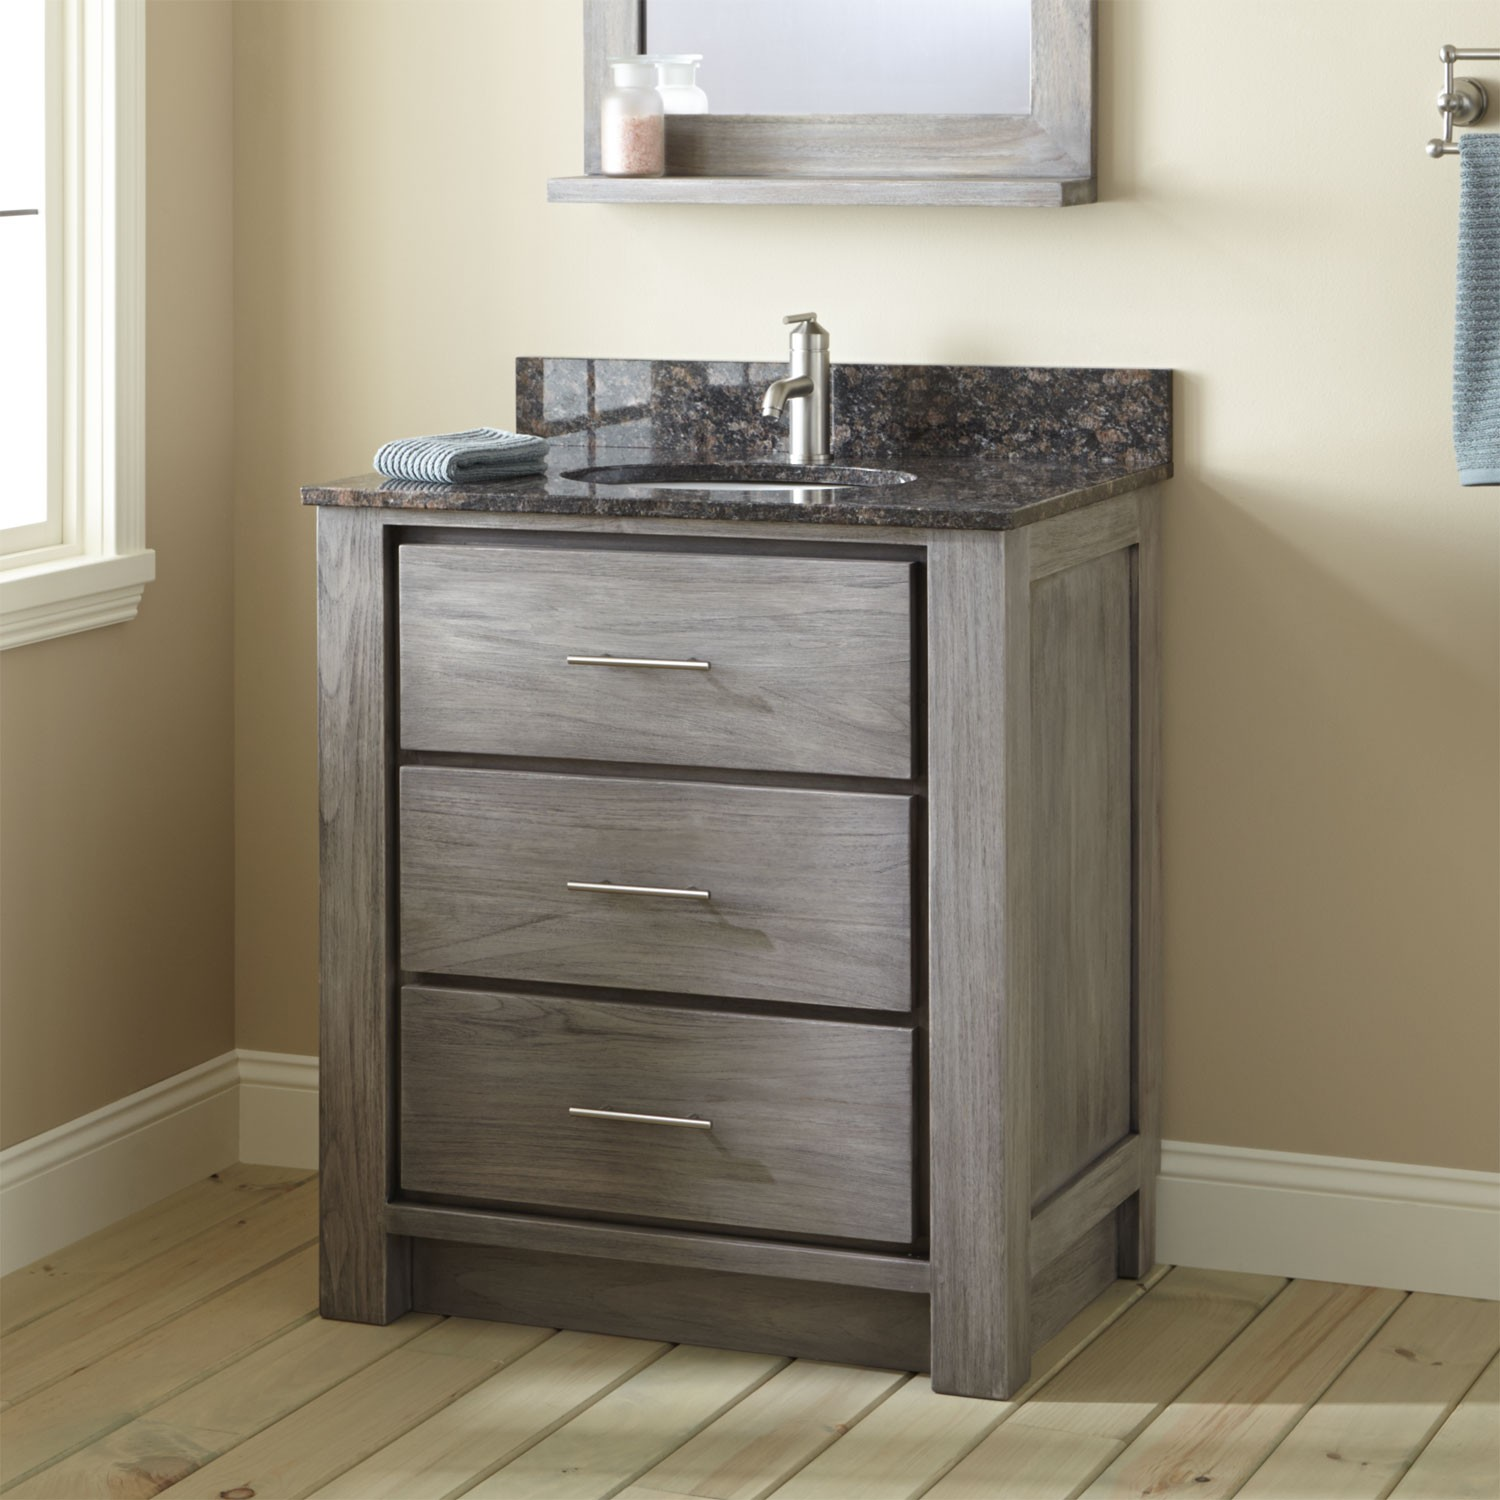 small bathroom vanities for layouts lacking space eva furniture